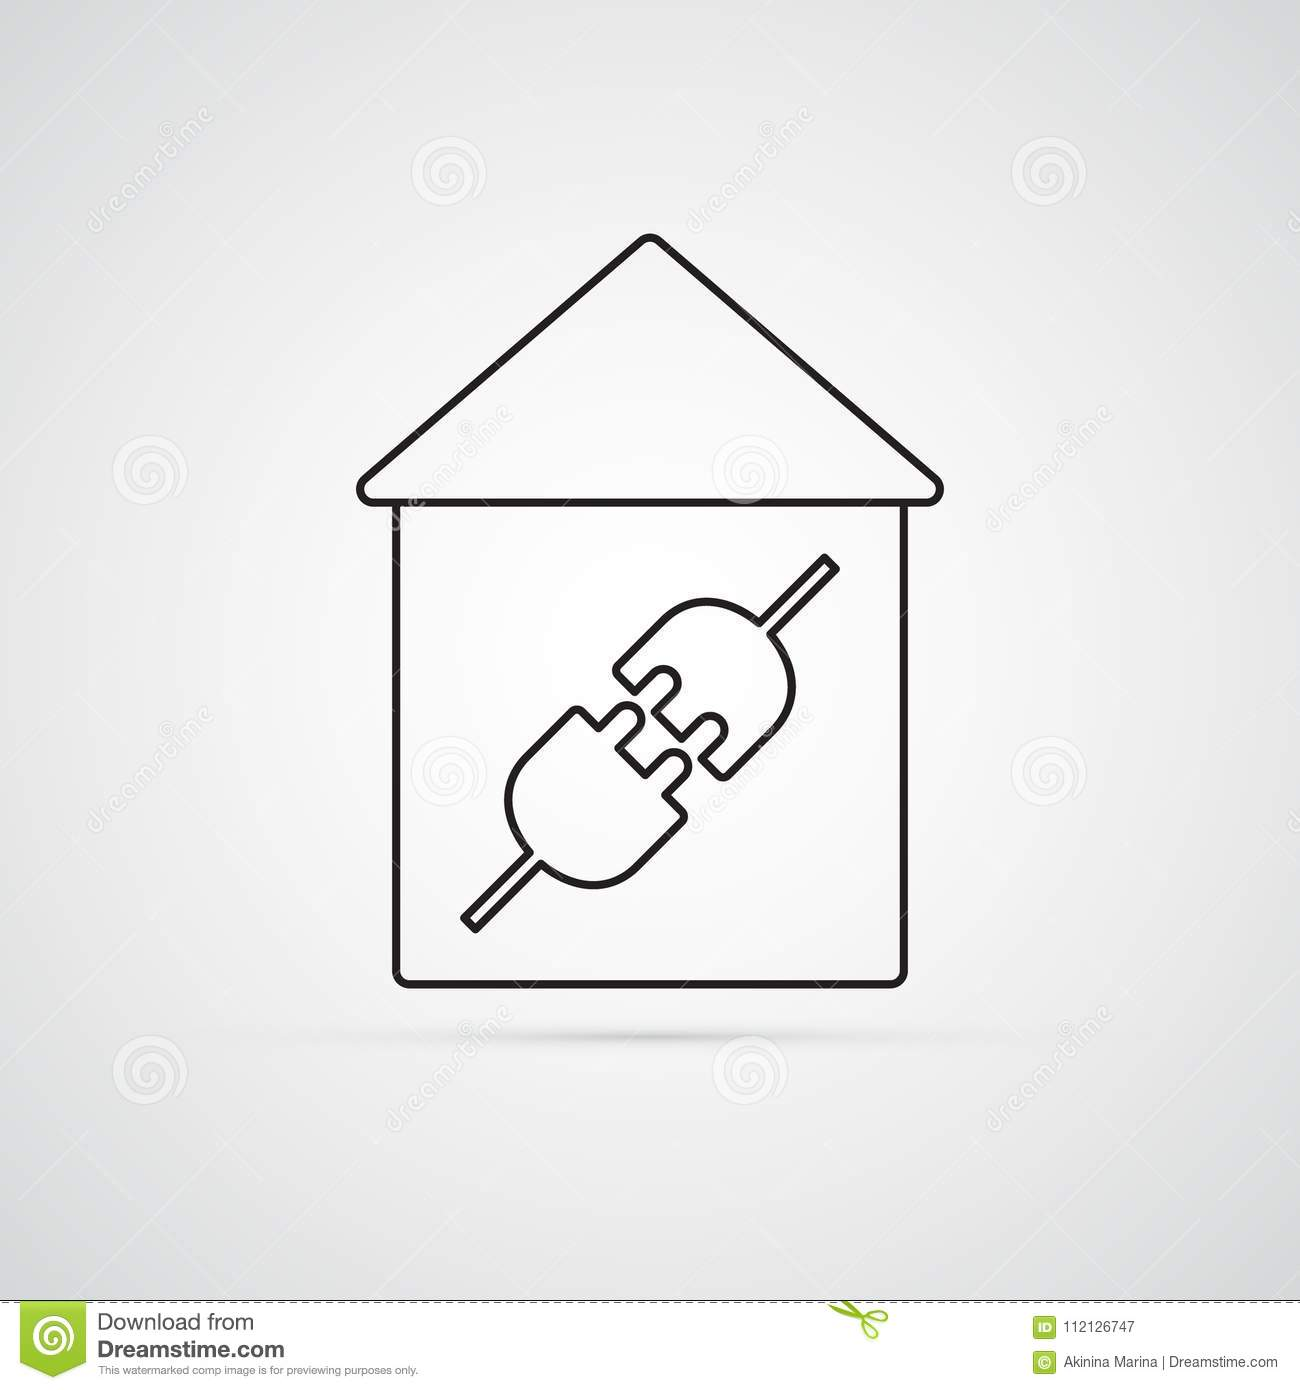 hight resolution of electric plug in house for illustration of electricity wiring home repairs symbol of connection type male and female